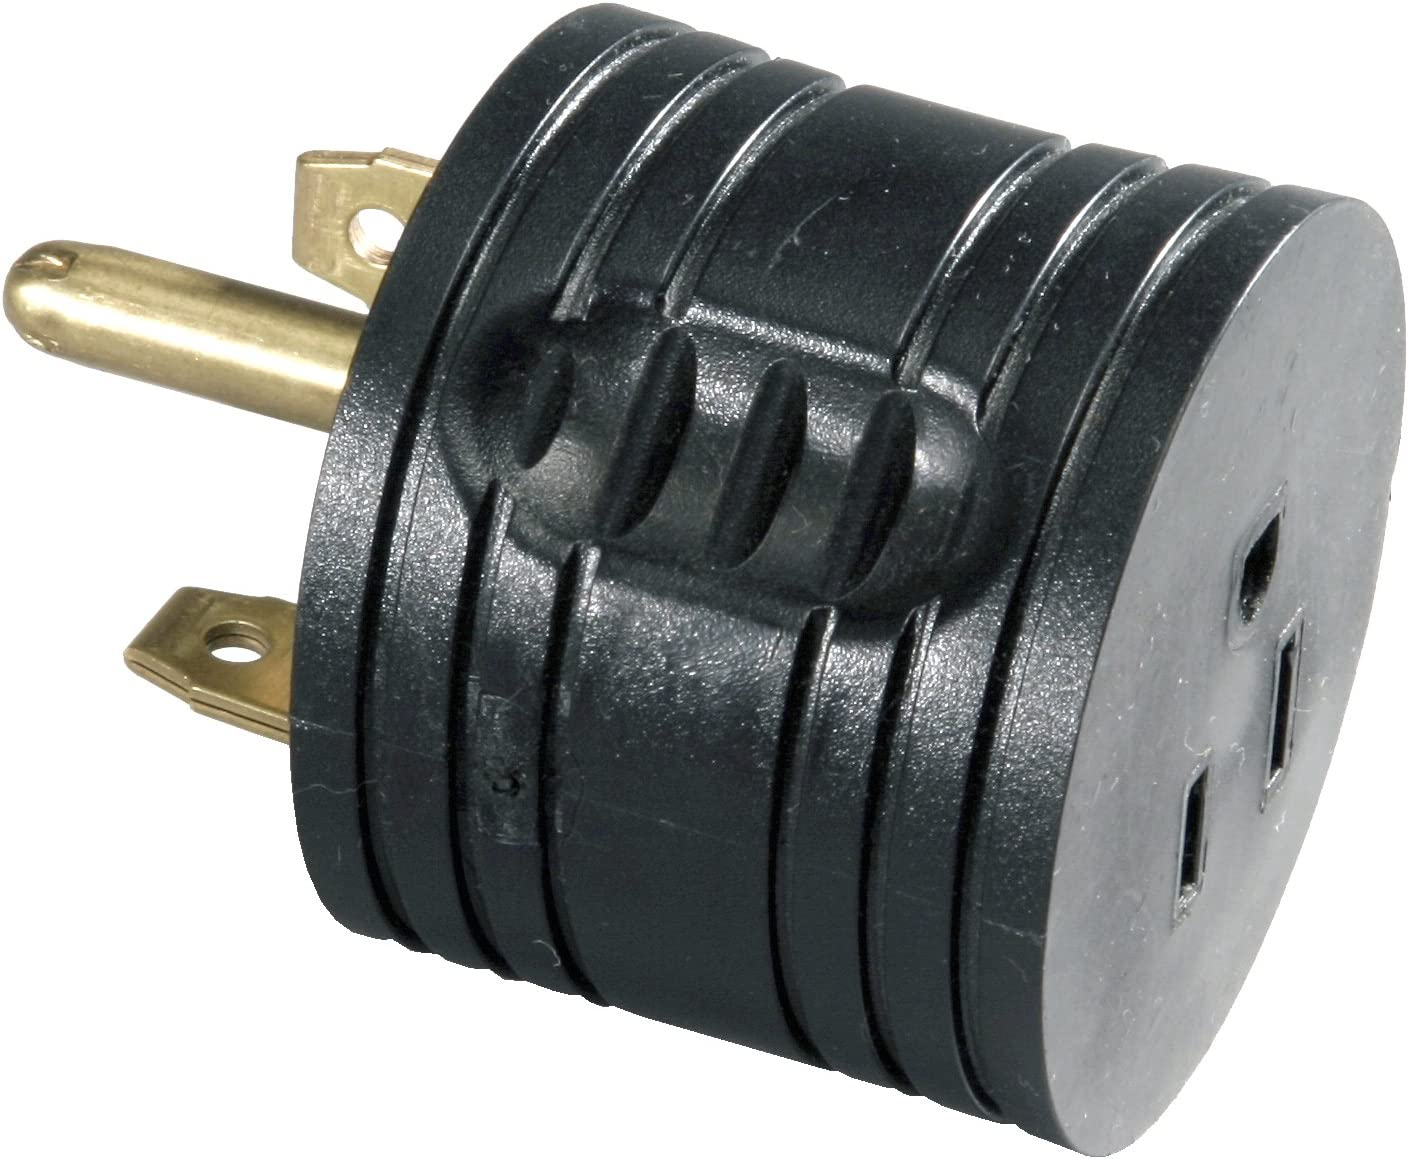 Arcon 14058 Generator Power Max 82% OFF Adapter 30-Amp 15-Amp Minneapolis Mall to Female Male